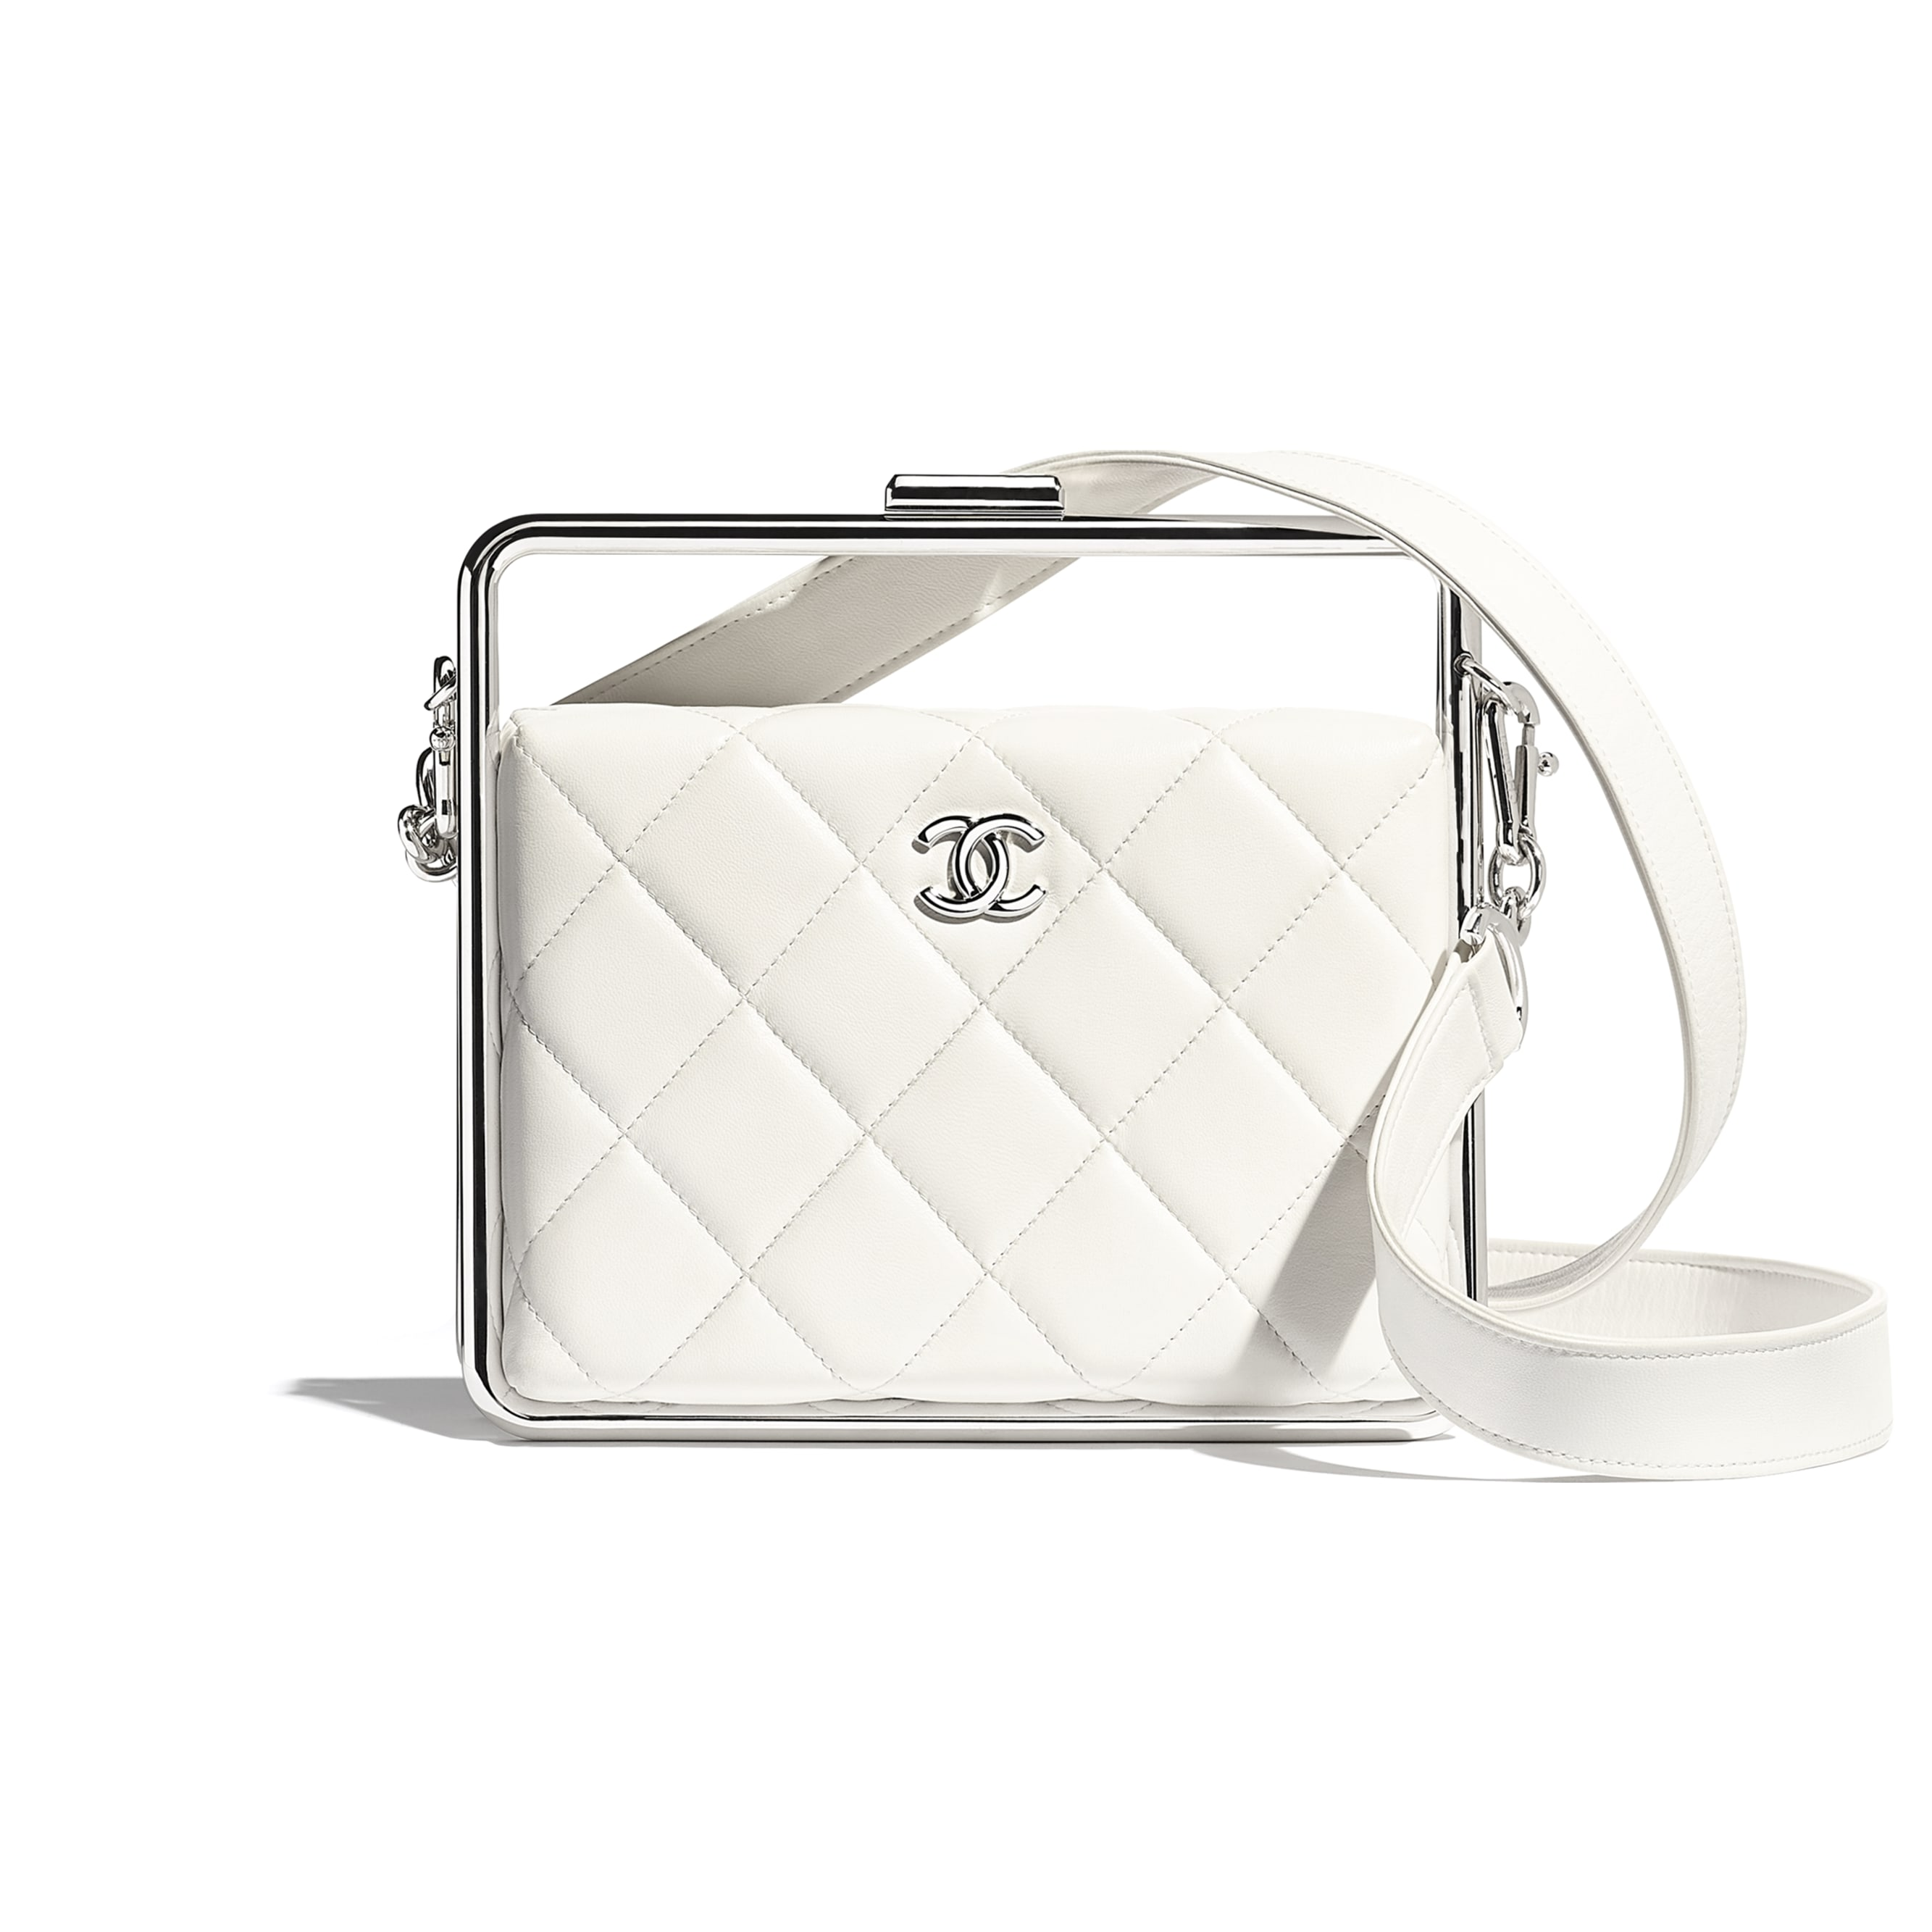 Clutch - White - Lambskin & Silver-Tone Metal - CHANEL - Default view - see standard sized version